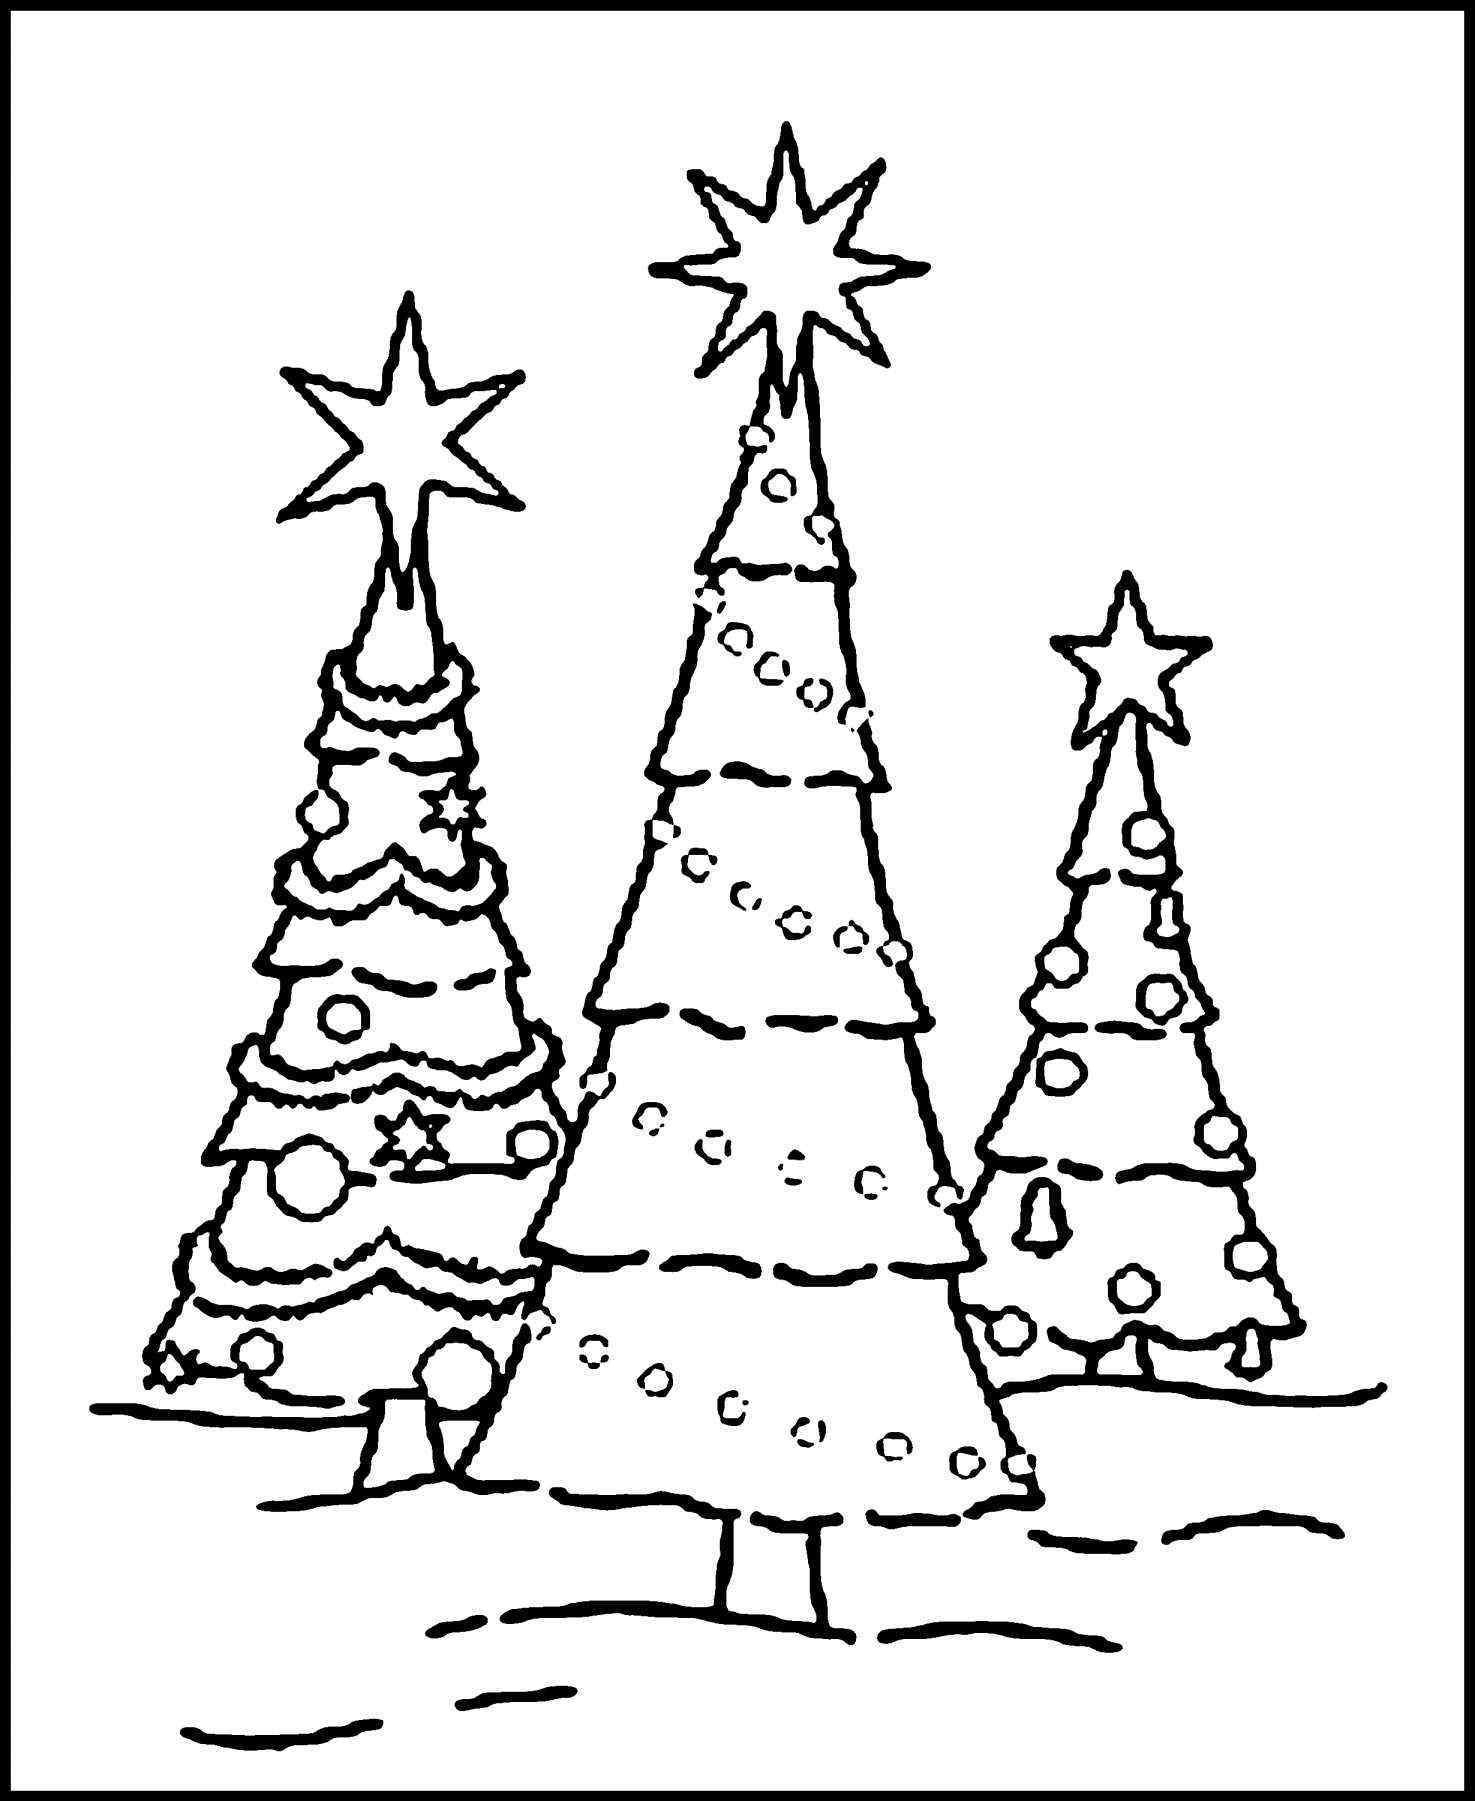 Coloring Pages Christmas Tree to Print | Free Coloring Sheets